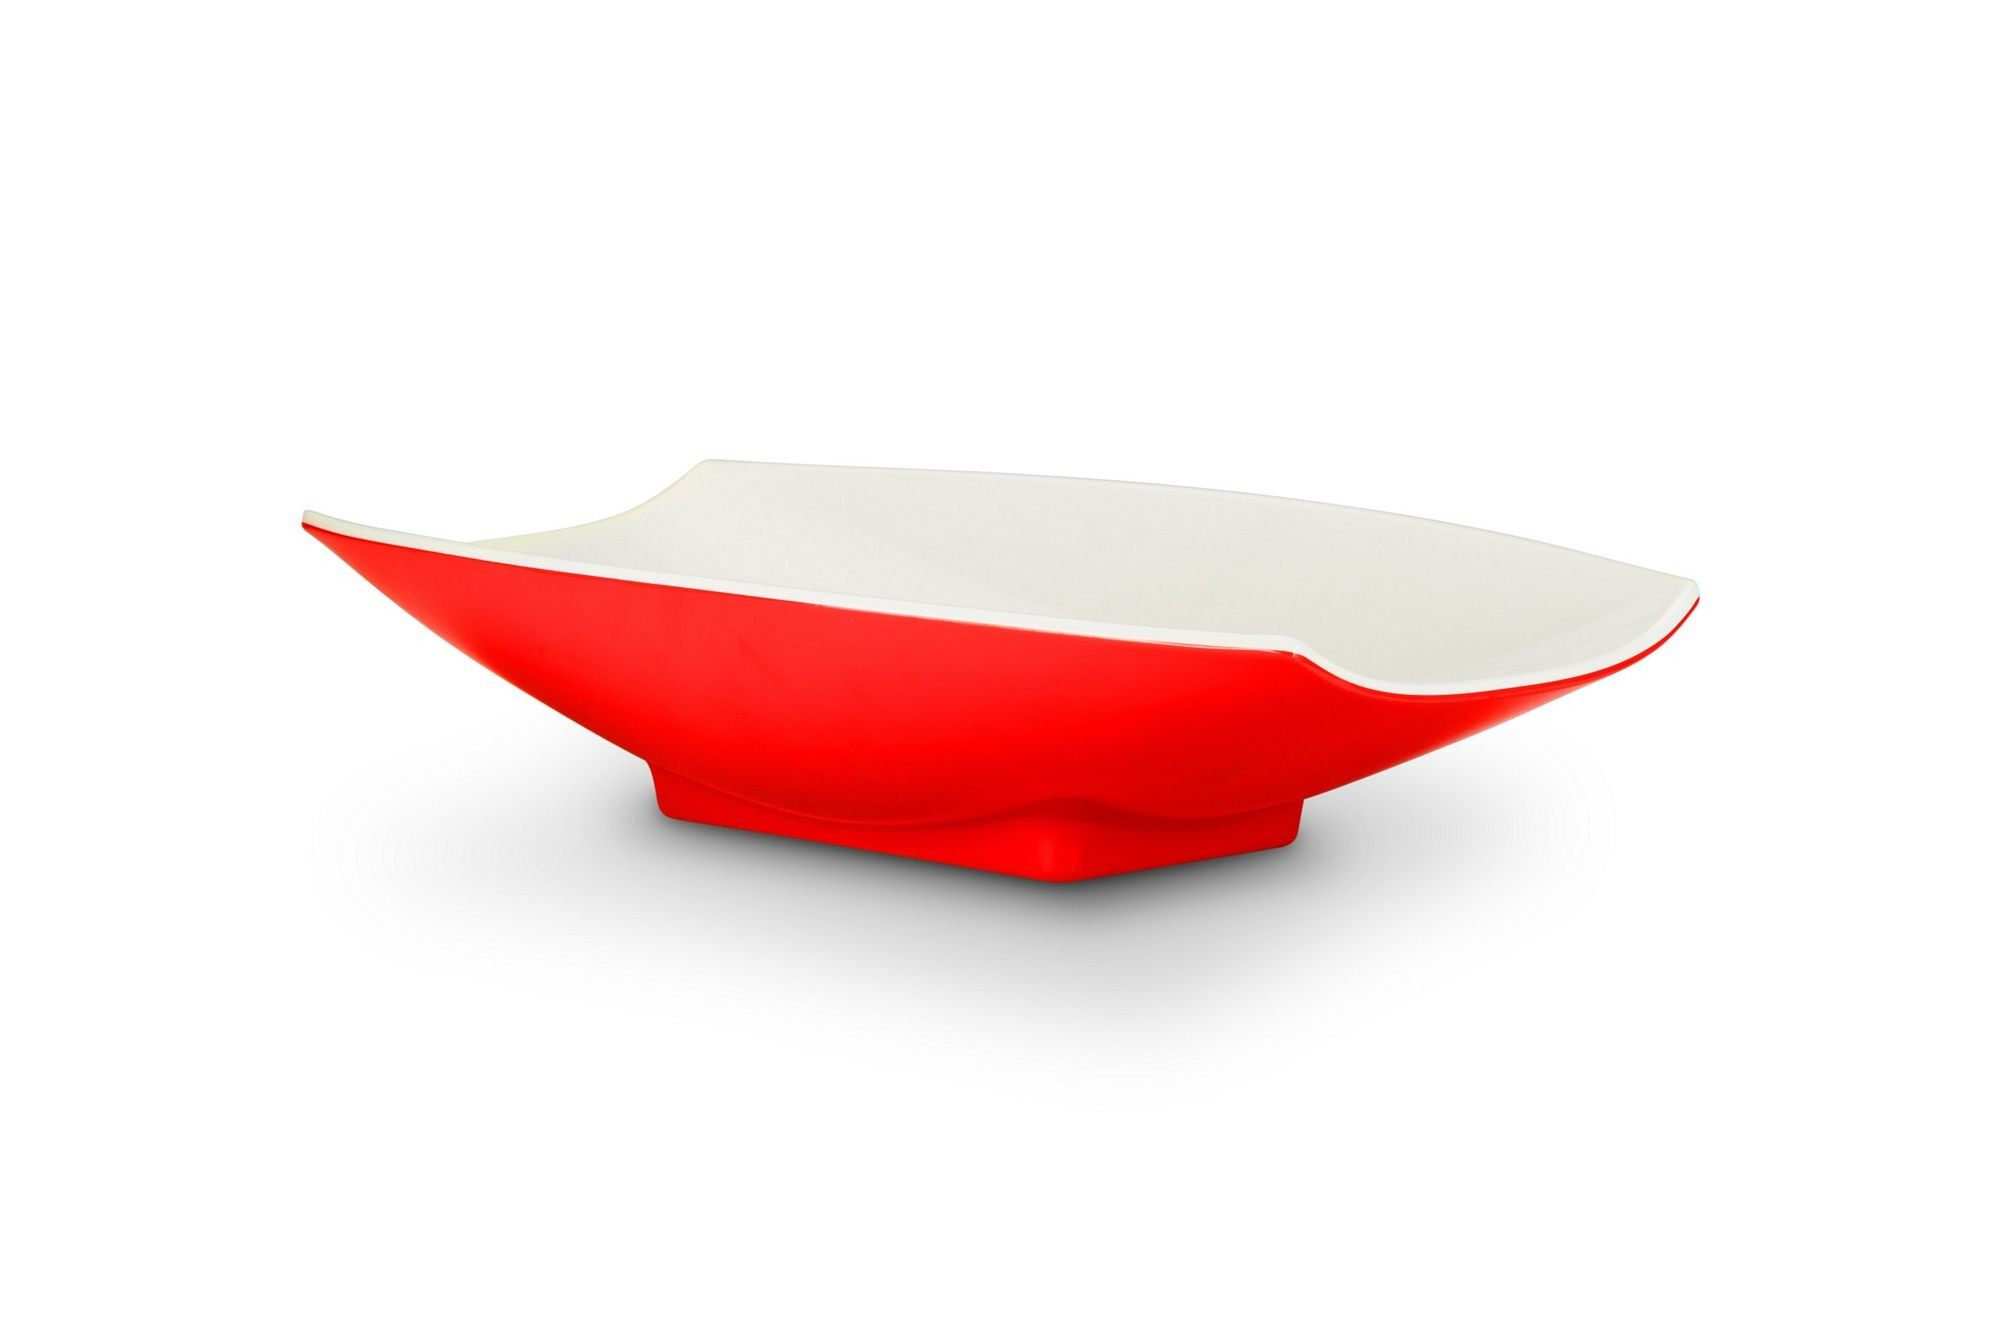 Bon Chef 53704-2ToneRed Melamine Curves Bowl, Red Outside/White Inside 2 Qt.